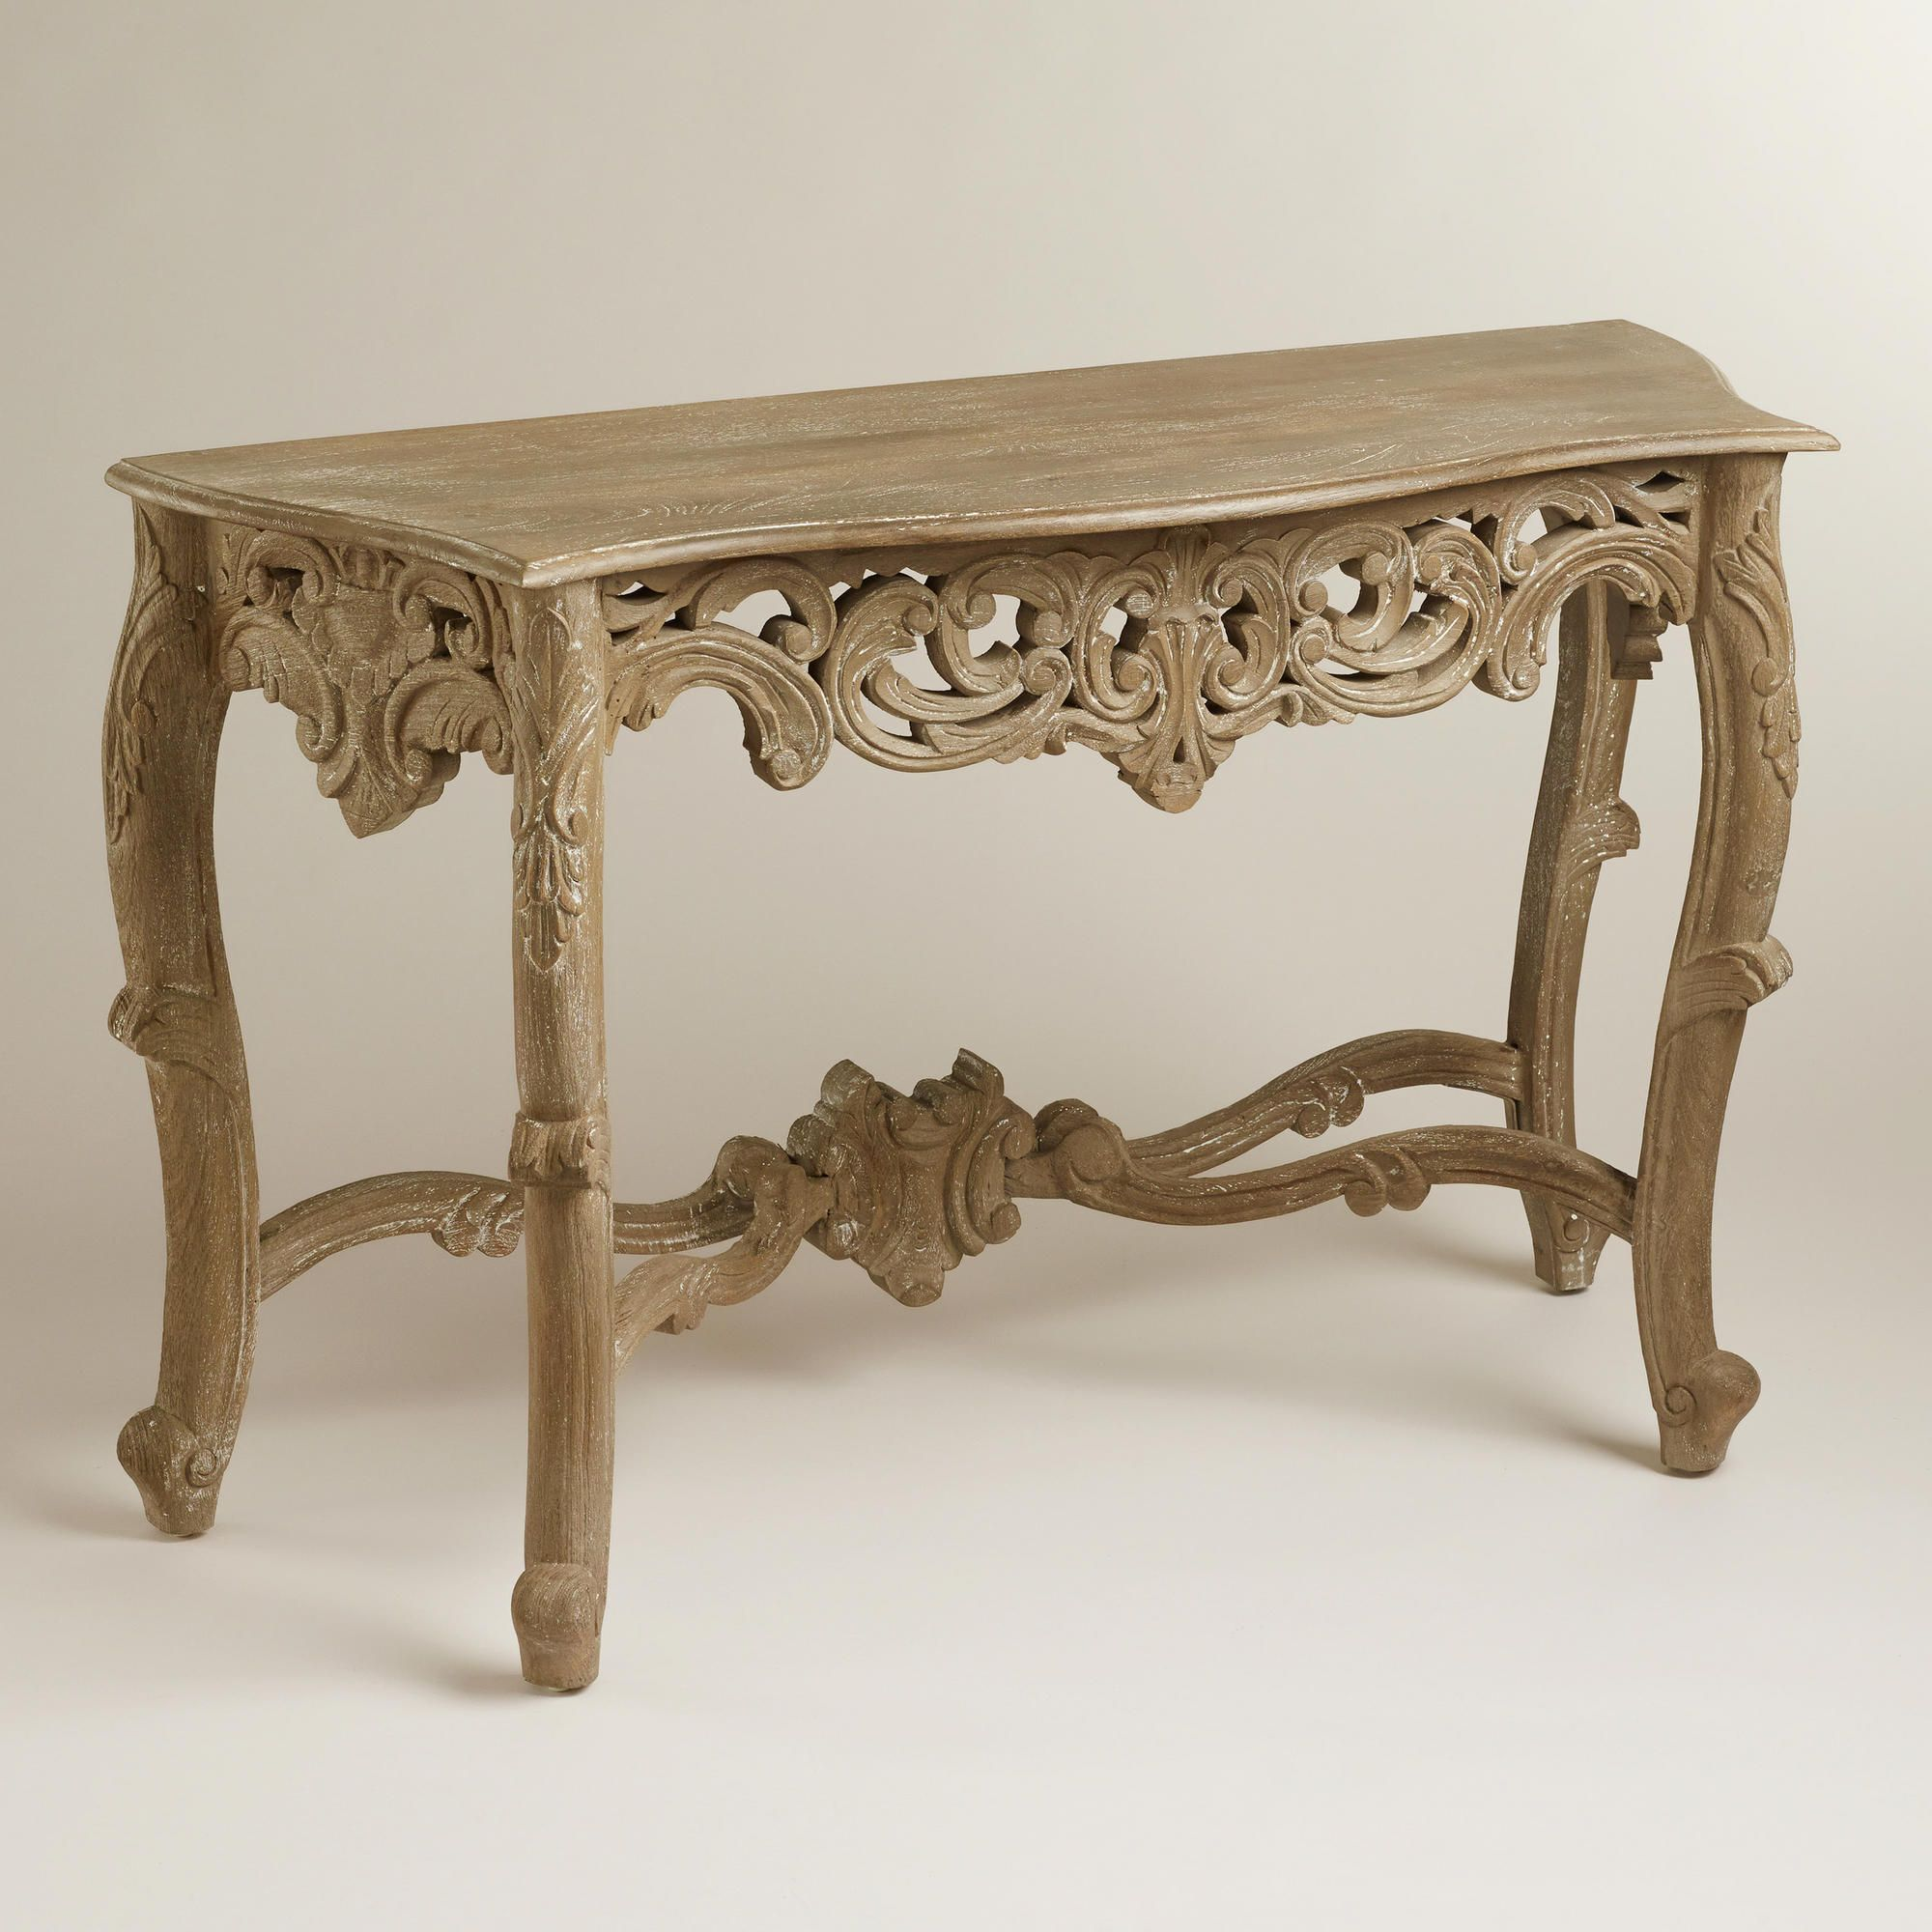 Home furniture love wooden victorian console table world home furniture love wooden victorian console table world market 399 geotapseo Images